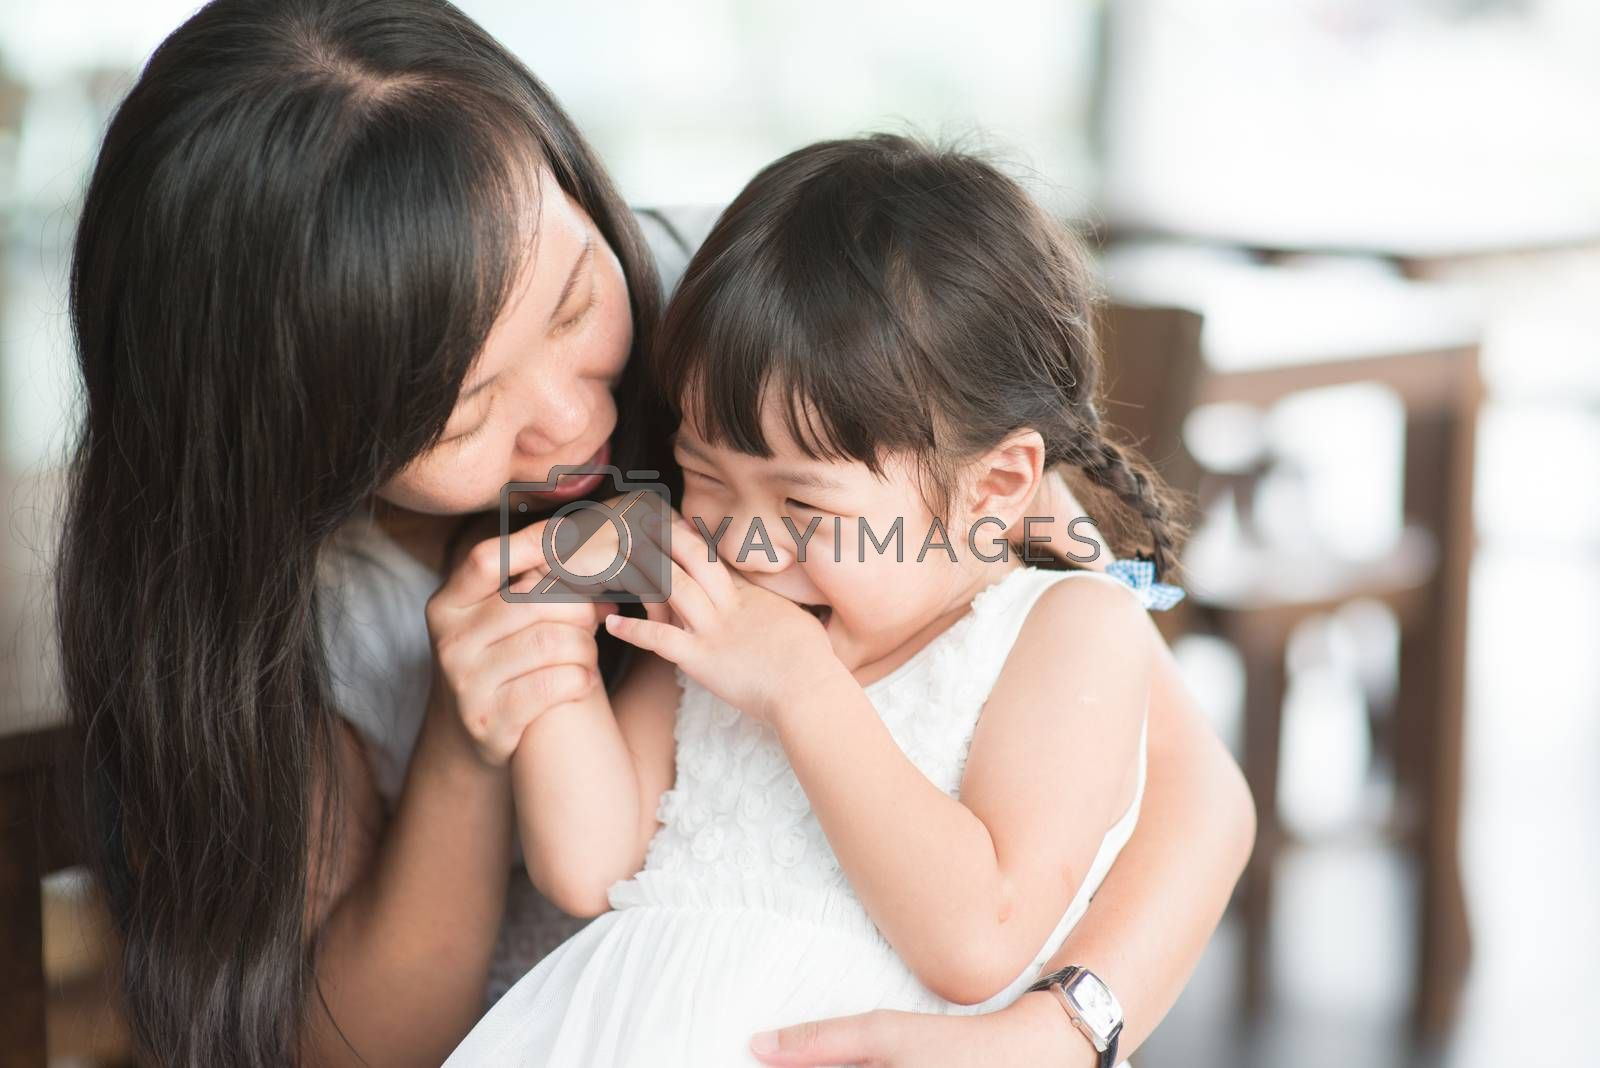 Candid shoot of people in cafeteria. Little girl with various face expression. Asian family outdoor lifestyle with natural light.